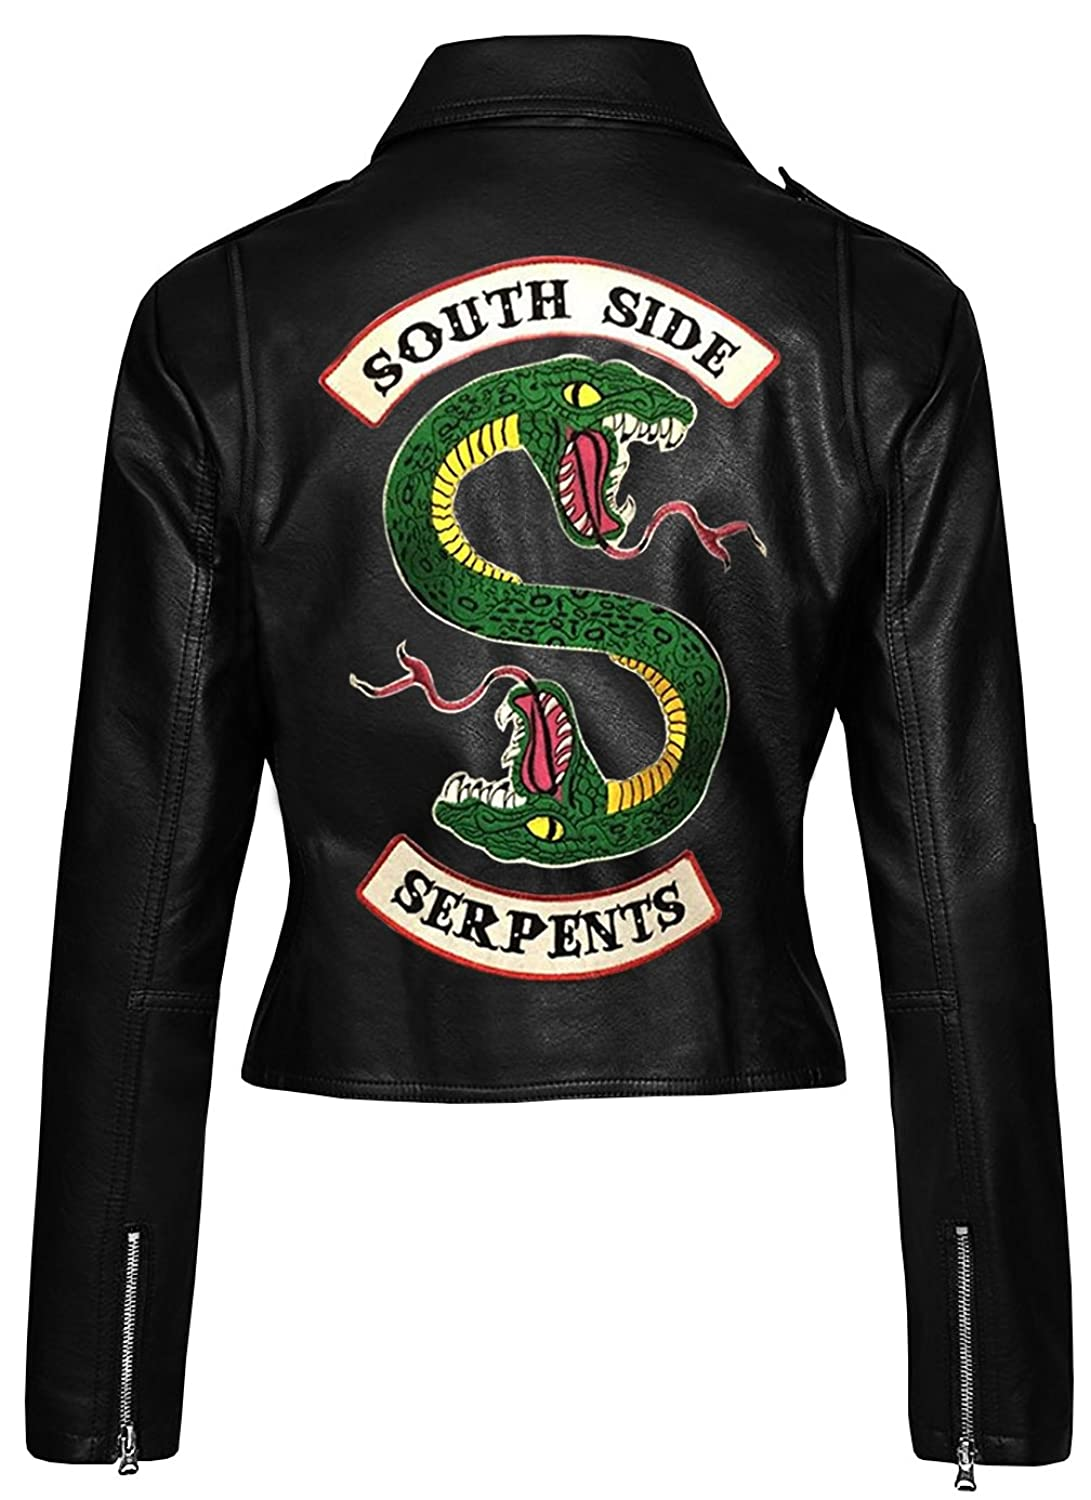 Lp Facon Womens Southside Serpents Riverdale Slim Fit Biker Leather Jacket by Lp Facon